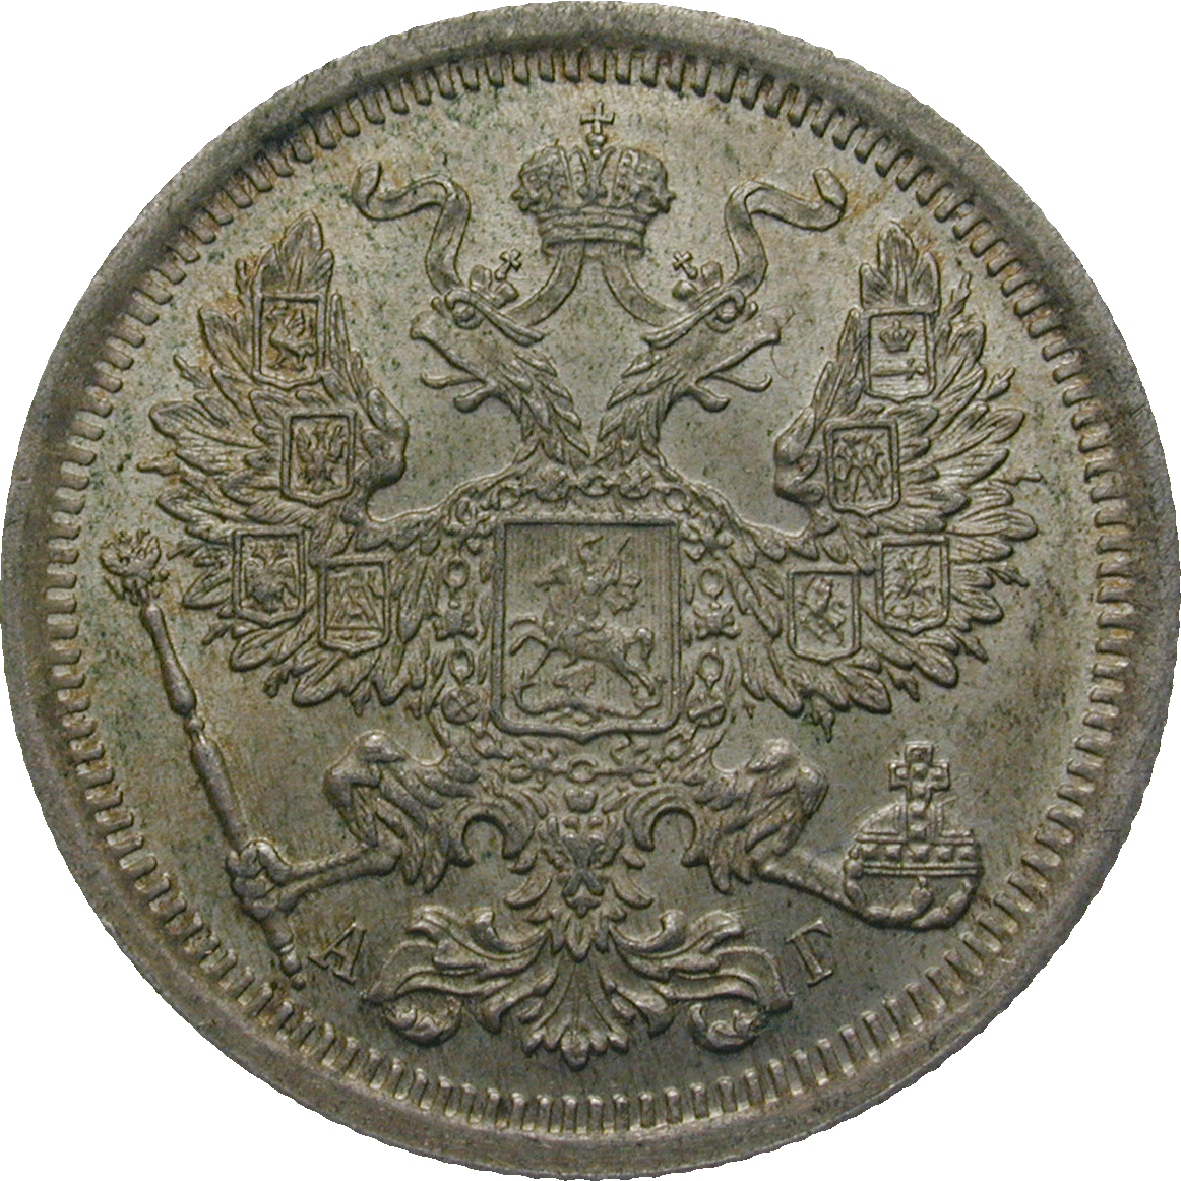 Russian Empire, Alexander III, 20 Kopecks 1893 (obverse)